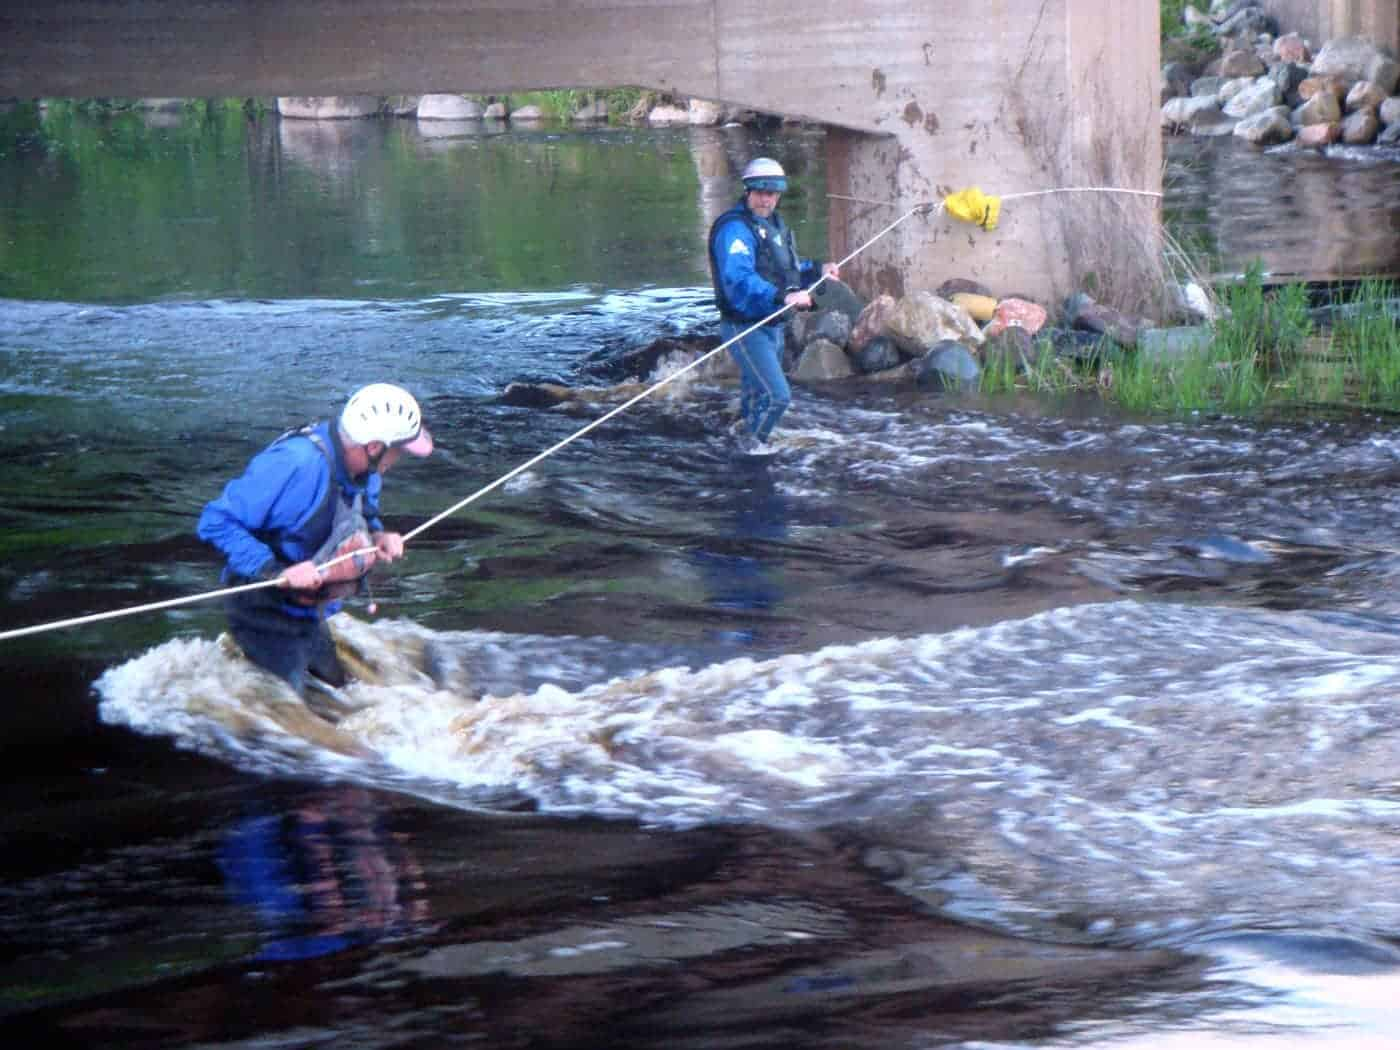 The author's husband, center, helps set up a stream crossing exercise during a fire department river rescue training.